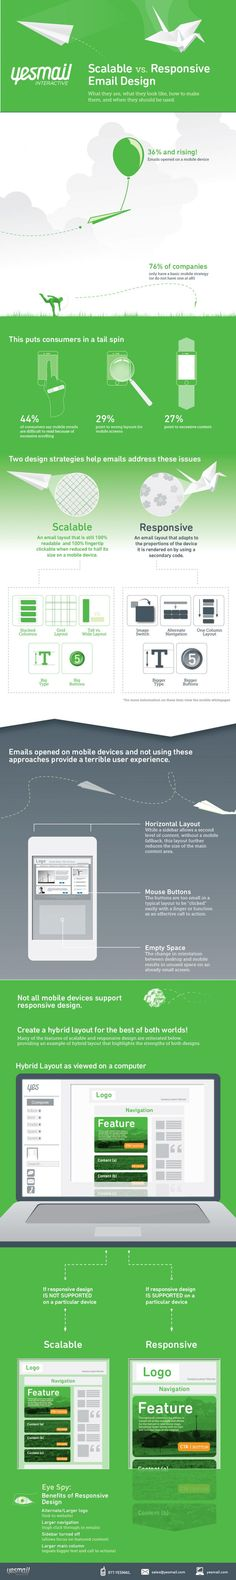 Escalable vs Responsive diseño de emails #infograif a#infographic #design